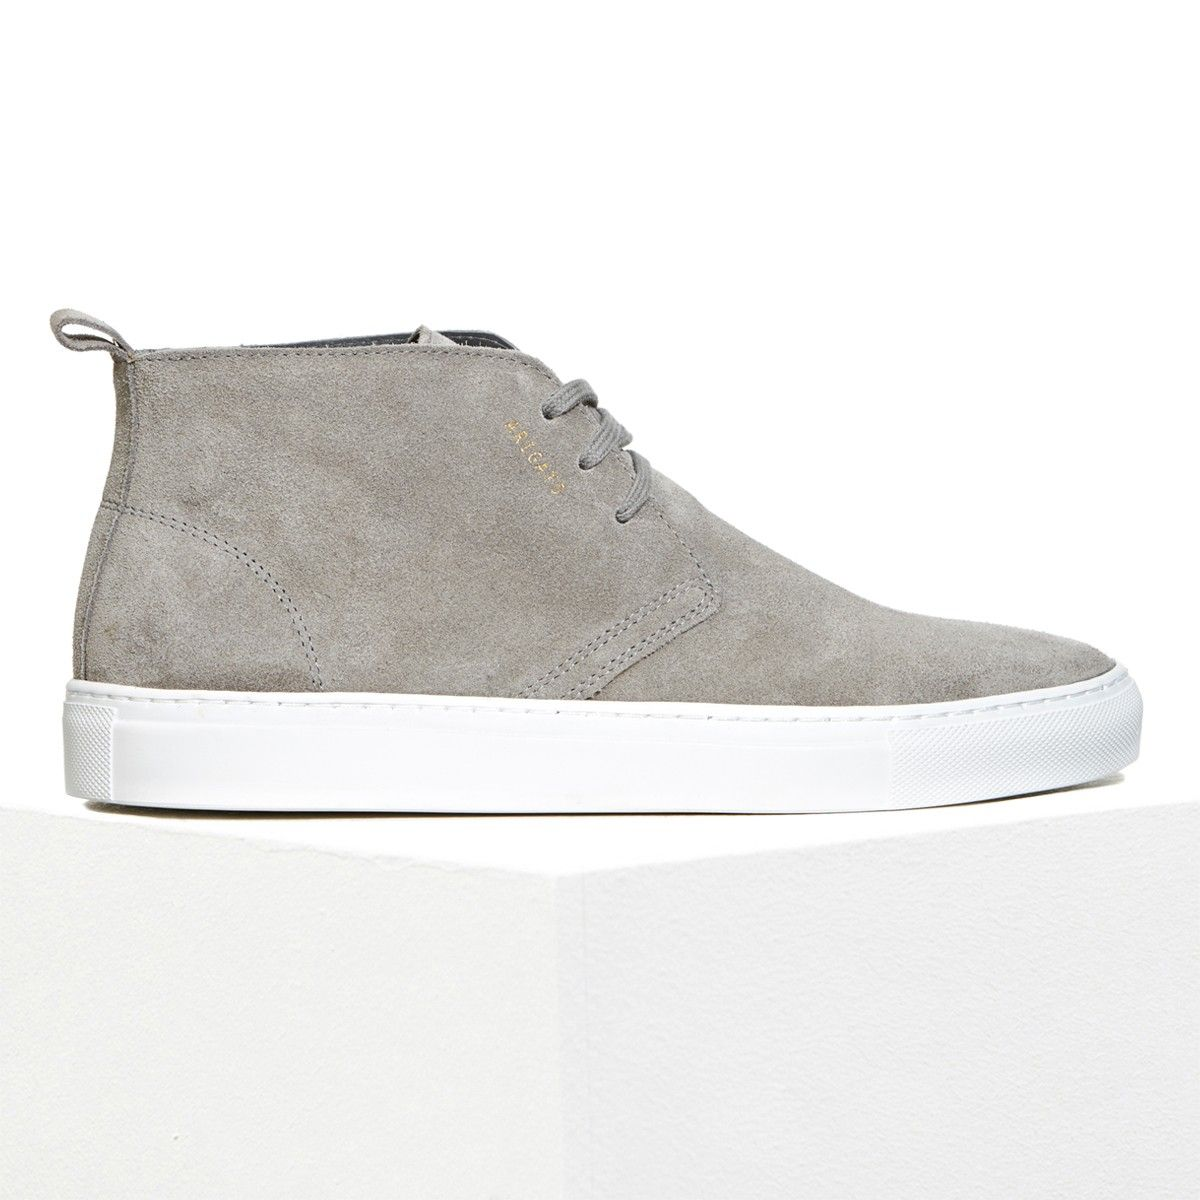 Axel Arigato chukka sneaker made from soft, supple grey suede and with a  back tab